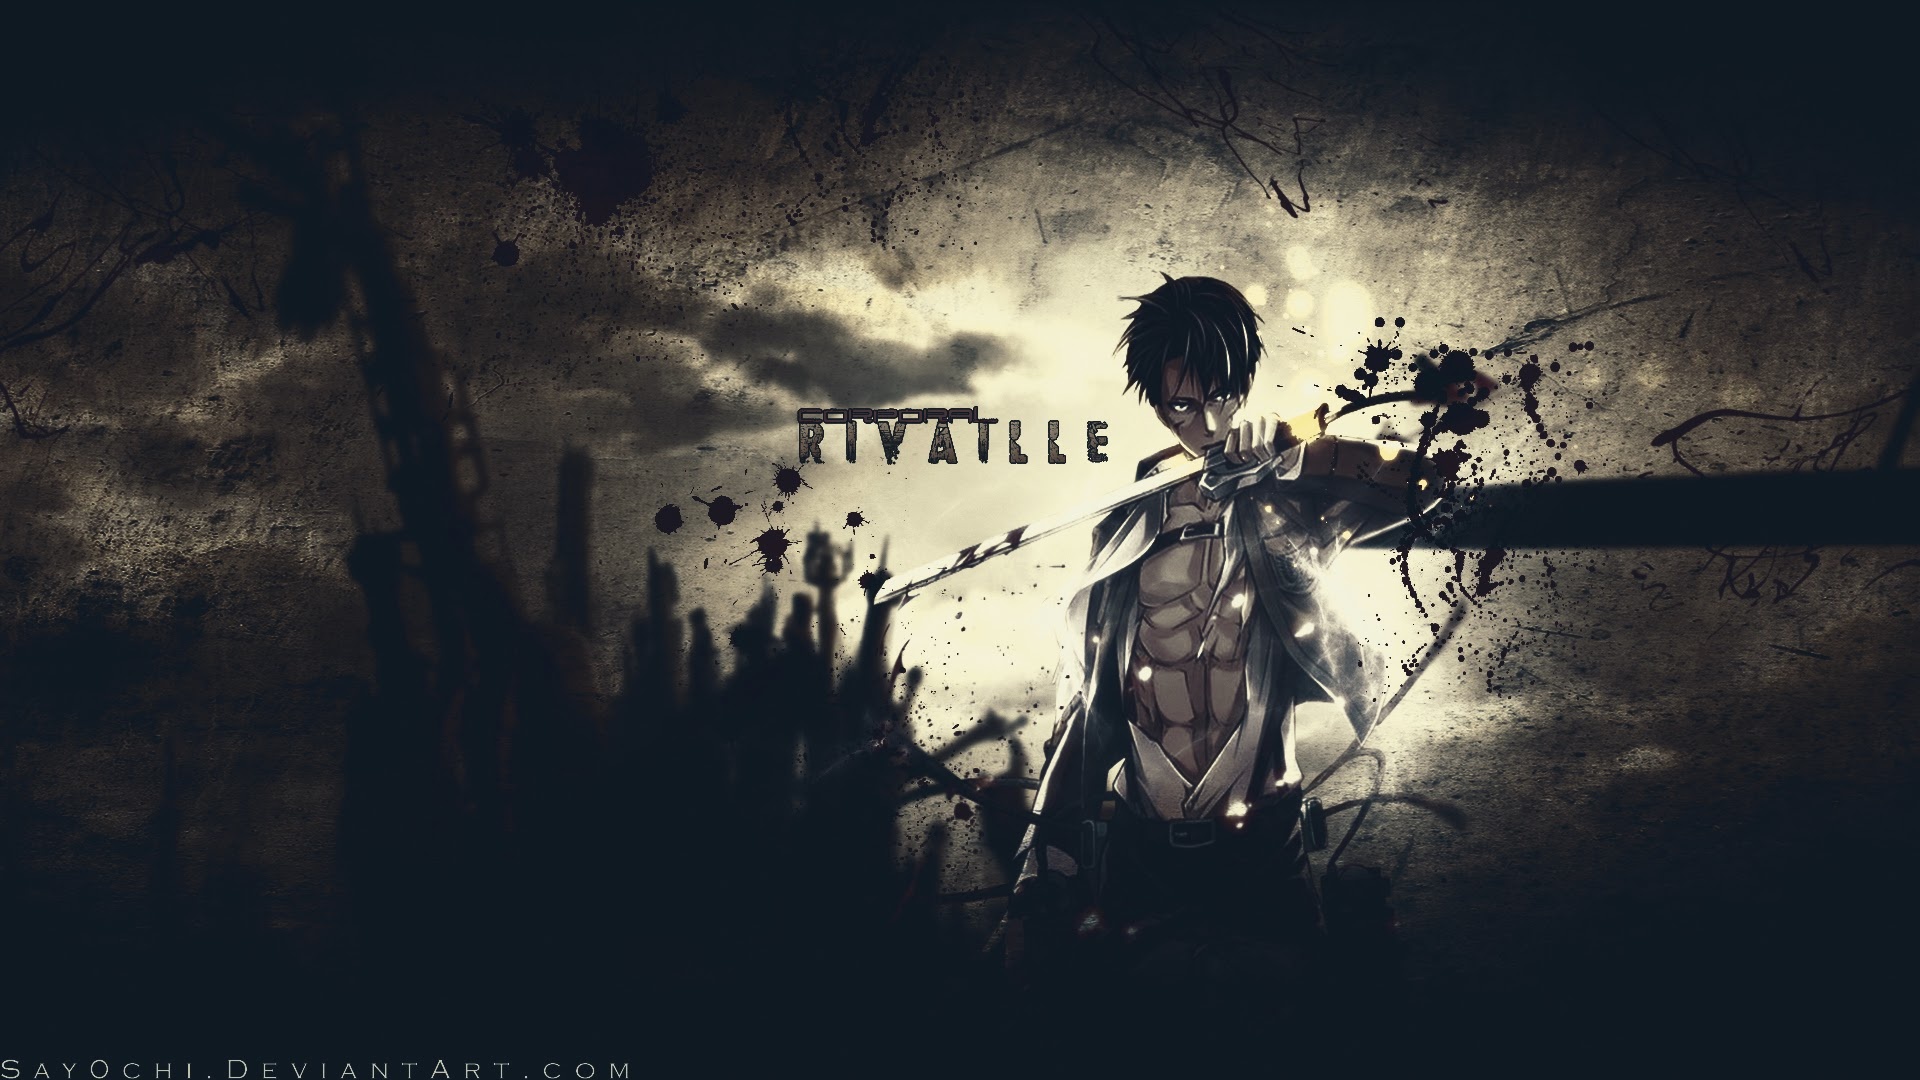 levi rivaille ttack on titan shingeki no kyojin anime hd wallpaper 1920x1080